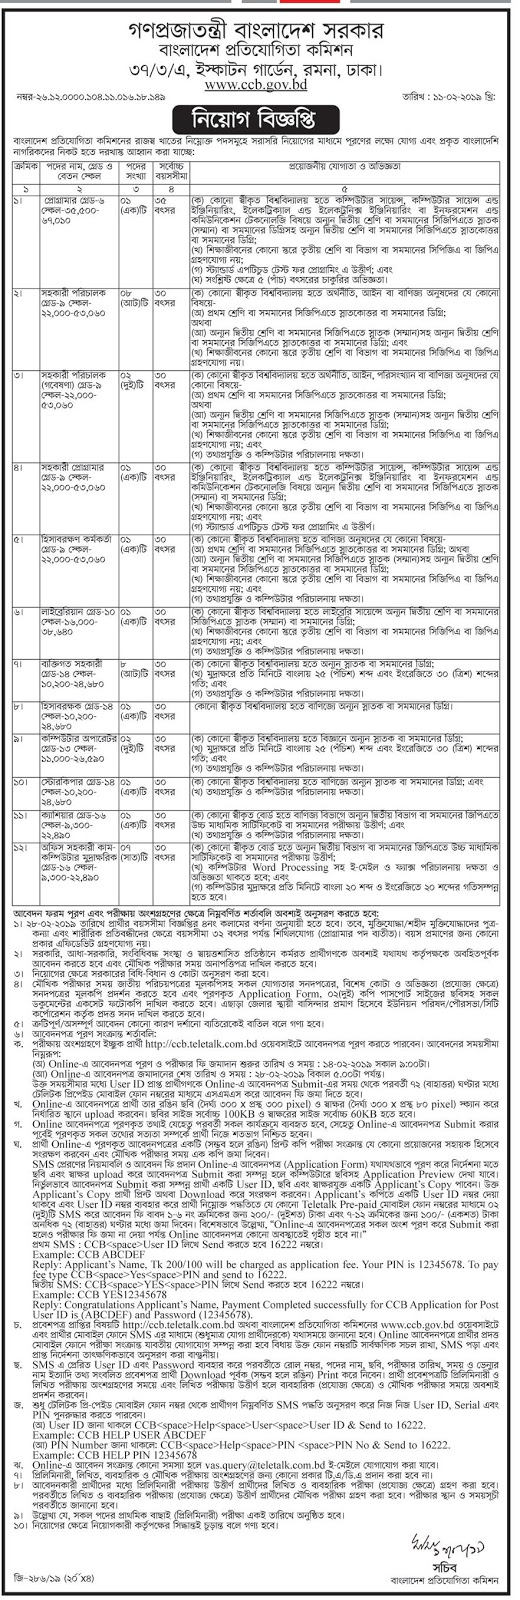 Competition Commission of Bangladesh (CCB) Job Circular 2019